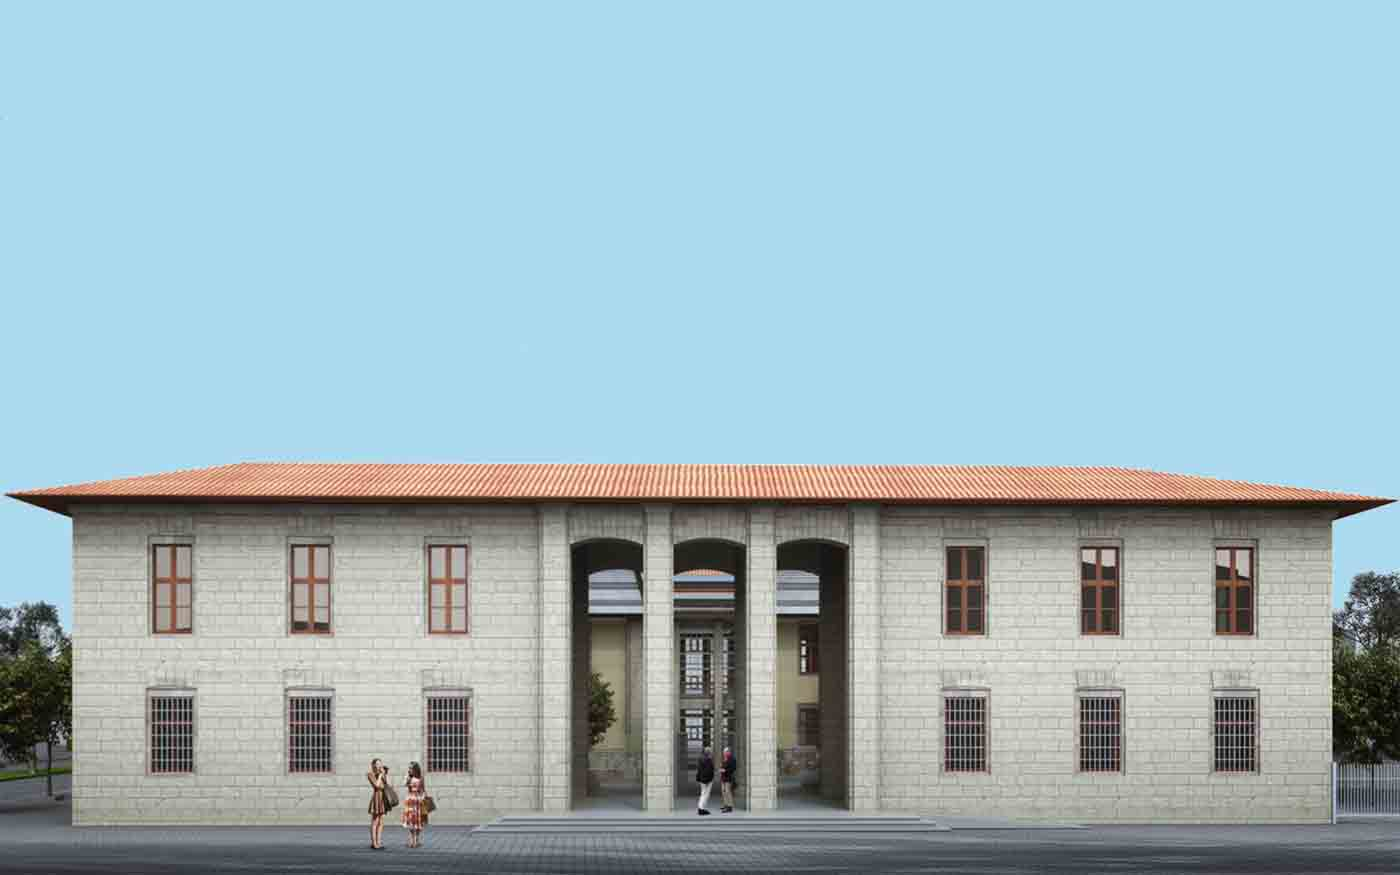 Tarsus Archaeology Museum